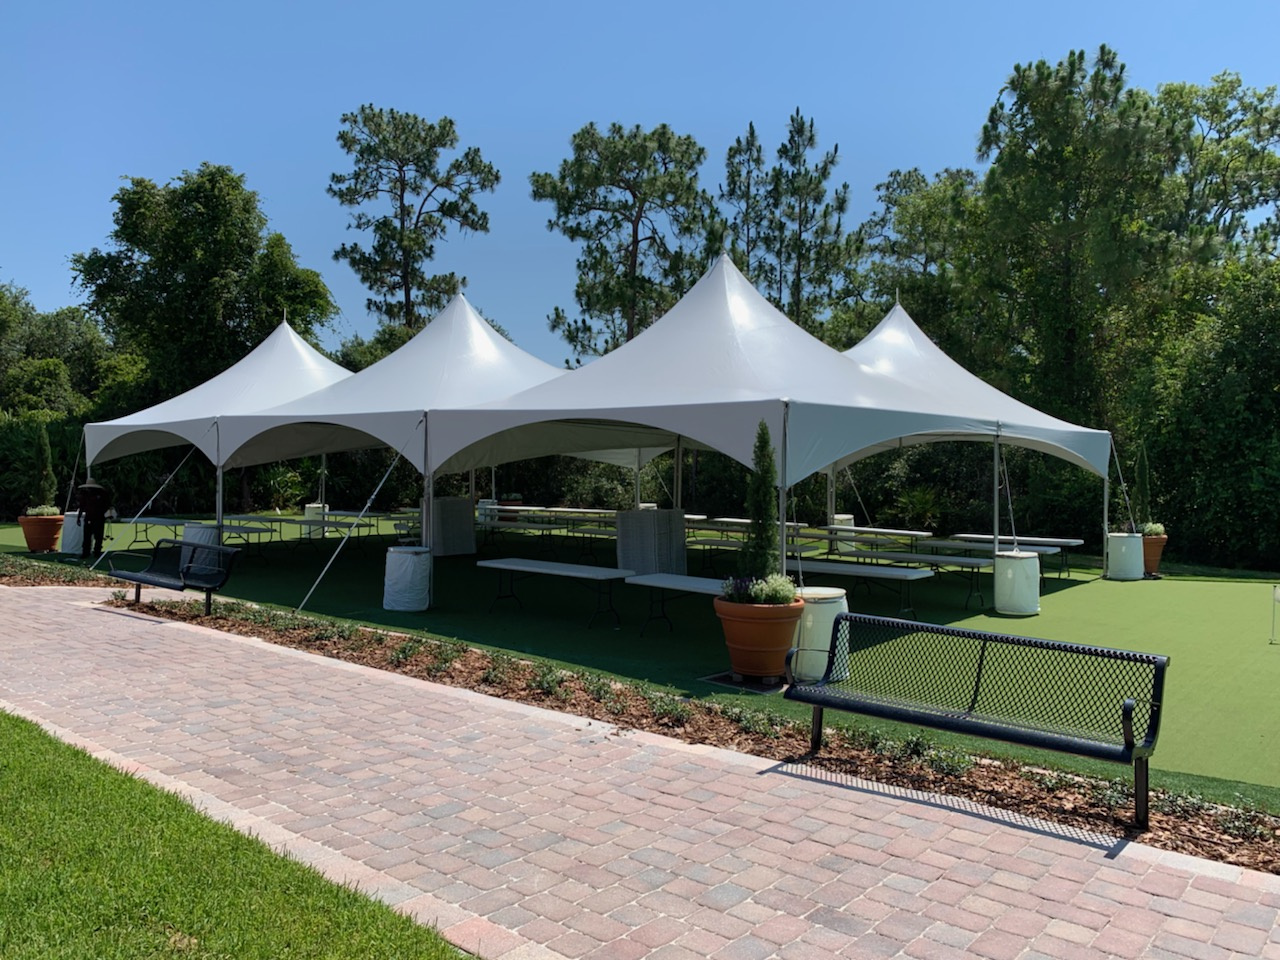 Money Maker Tent Rental Business In Volusia County